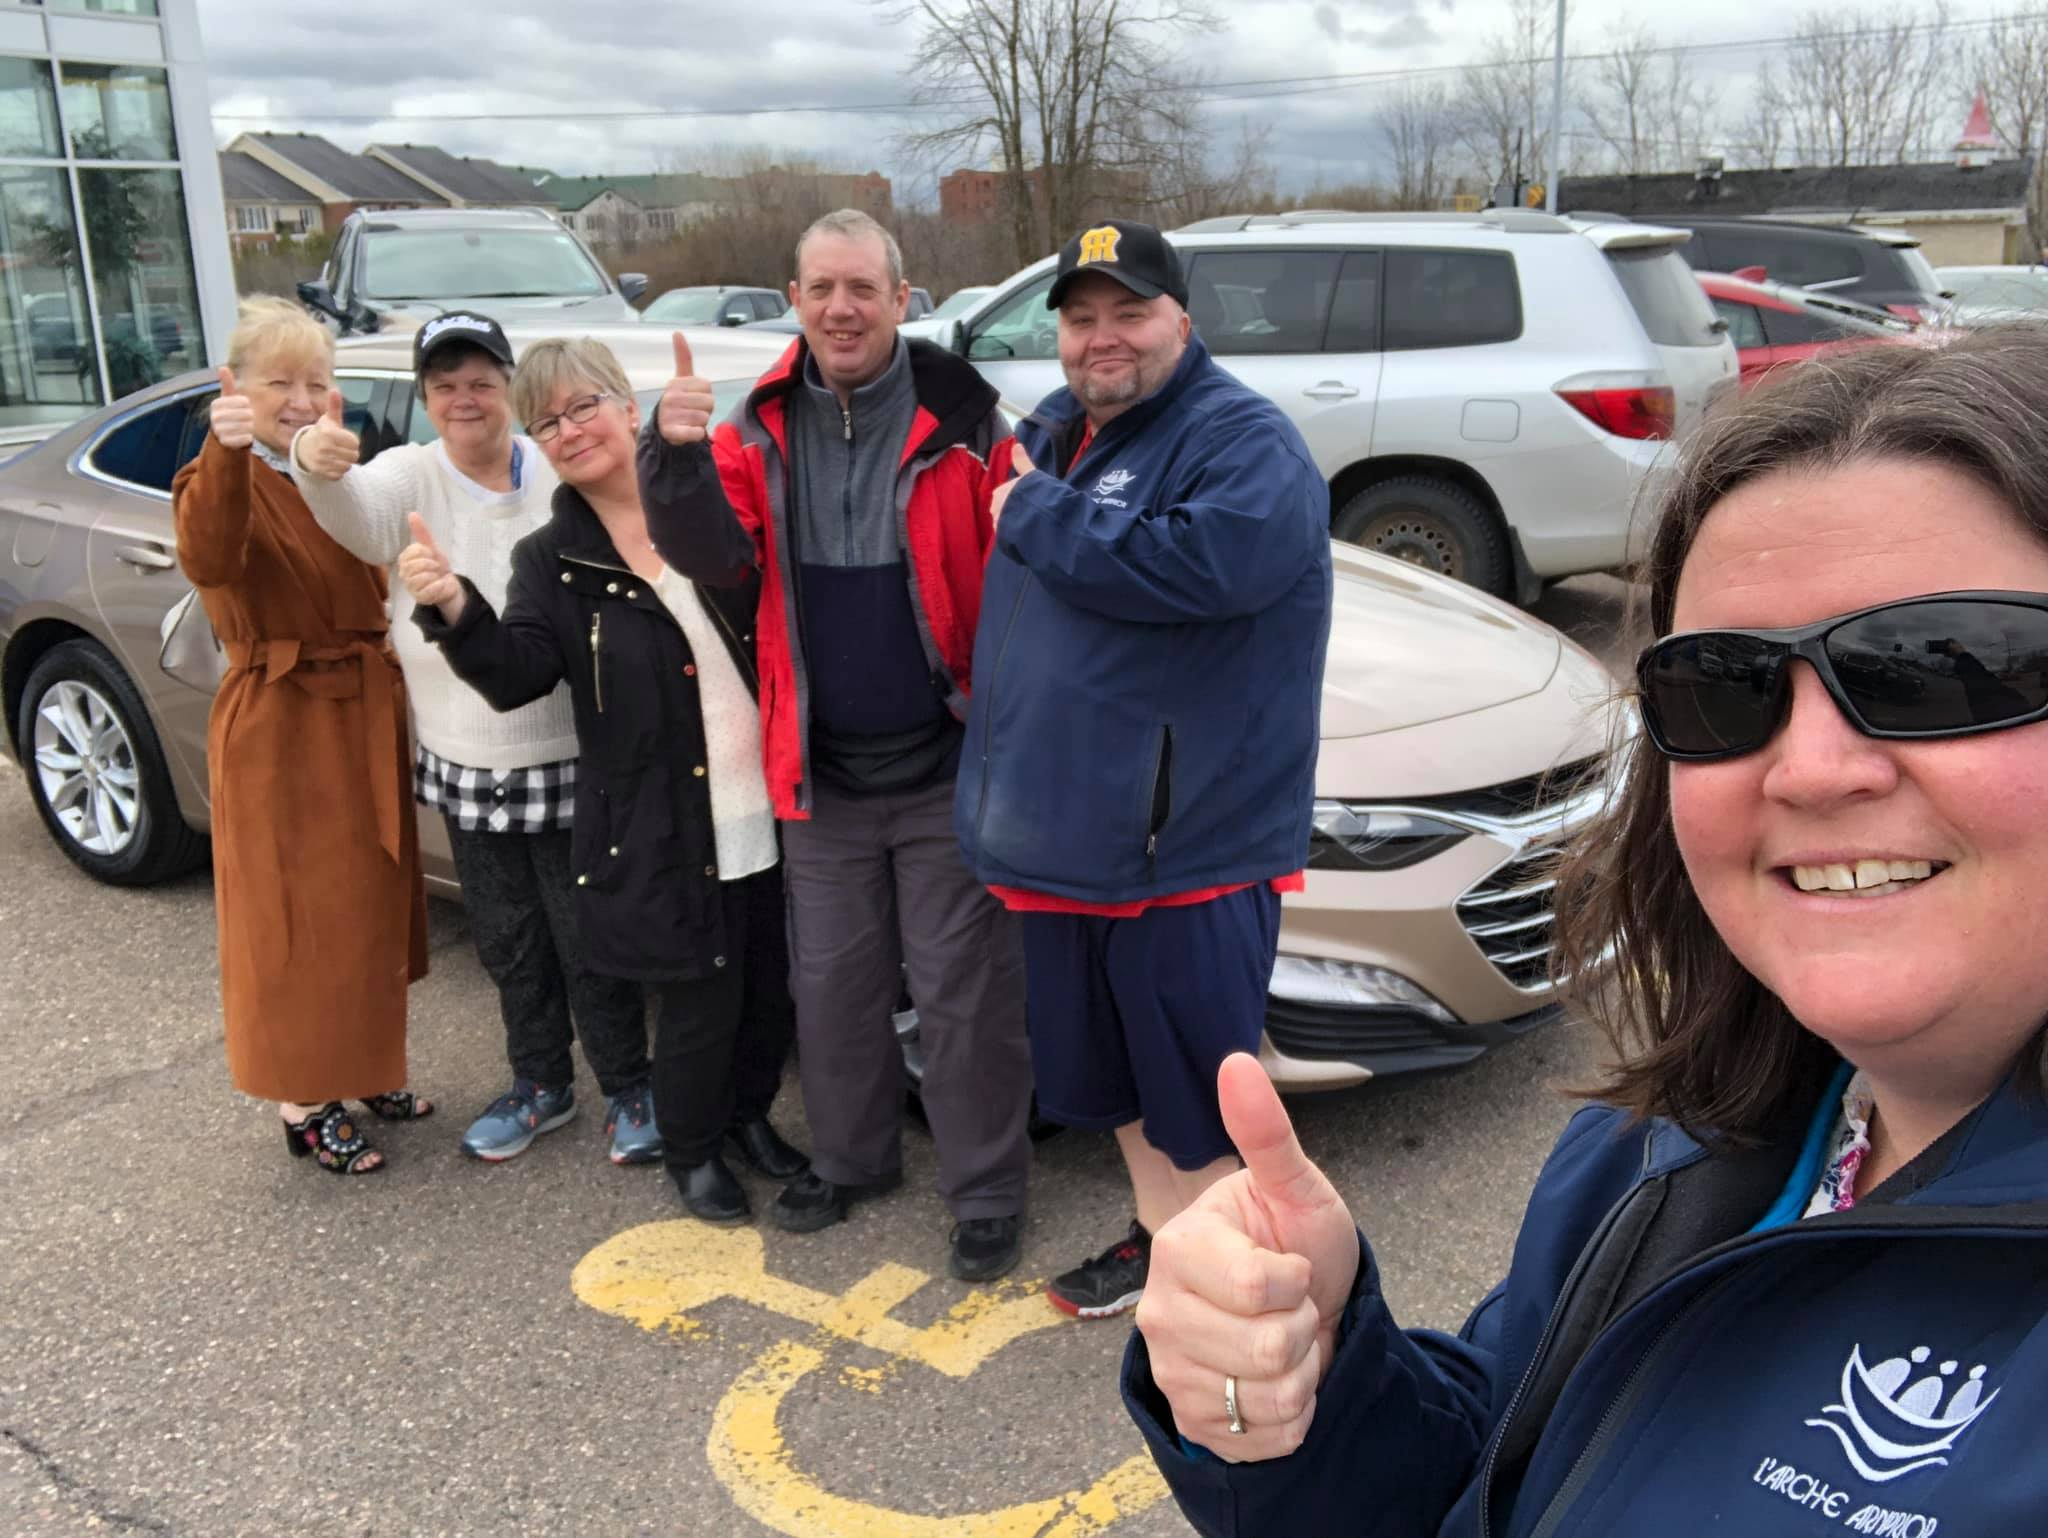 Thanks to your contributions, in April 2019 L'Arche Arnprior was able to buy a car for our community!